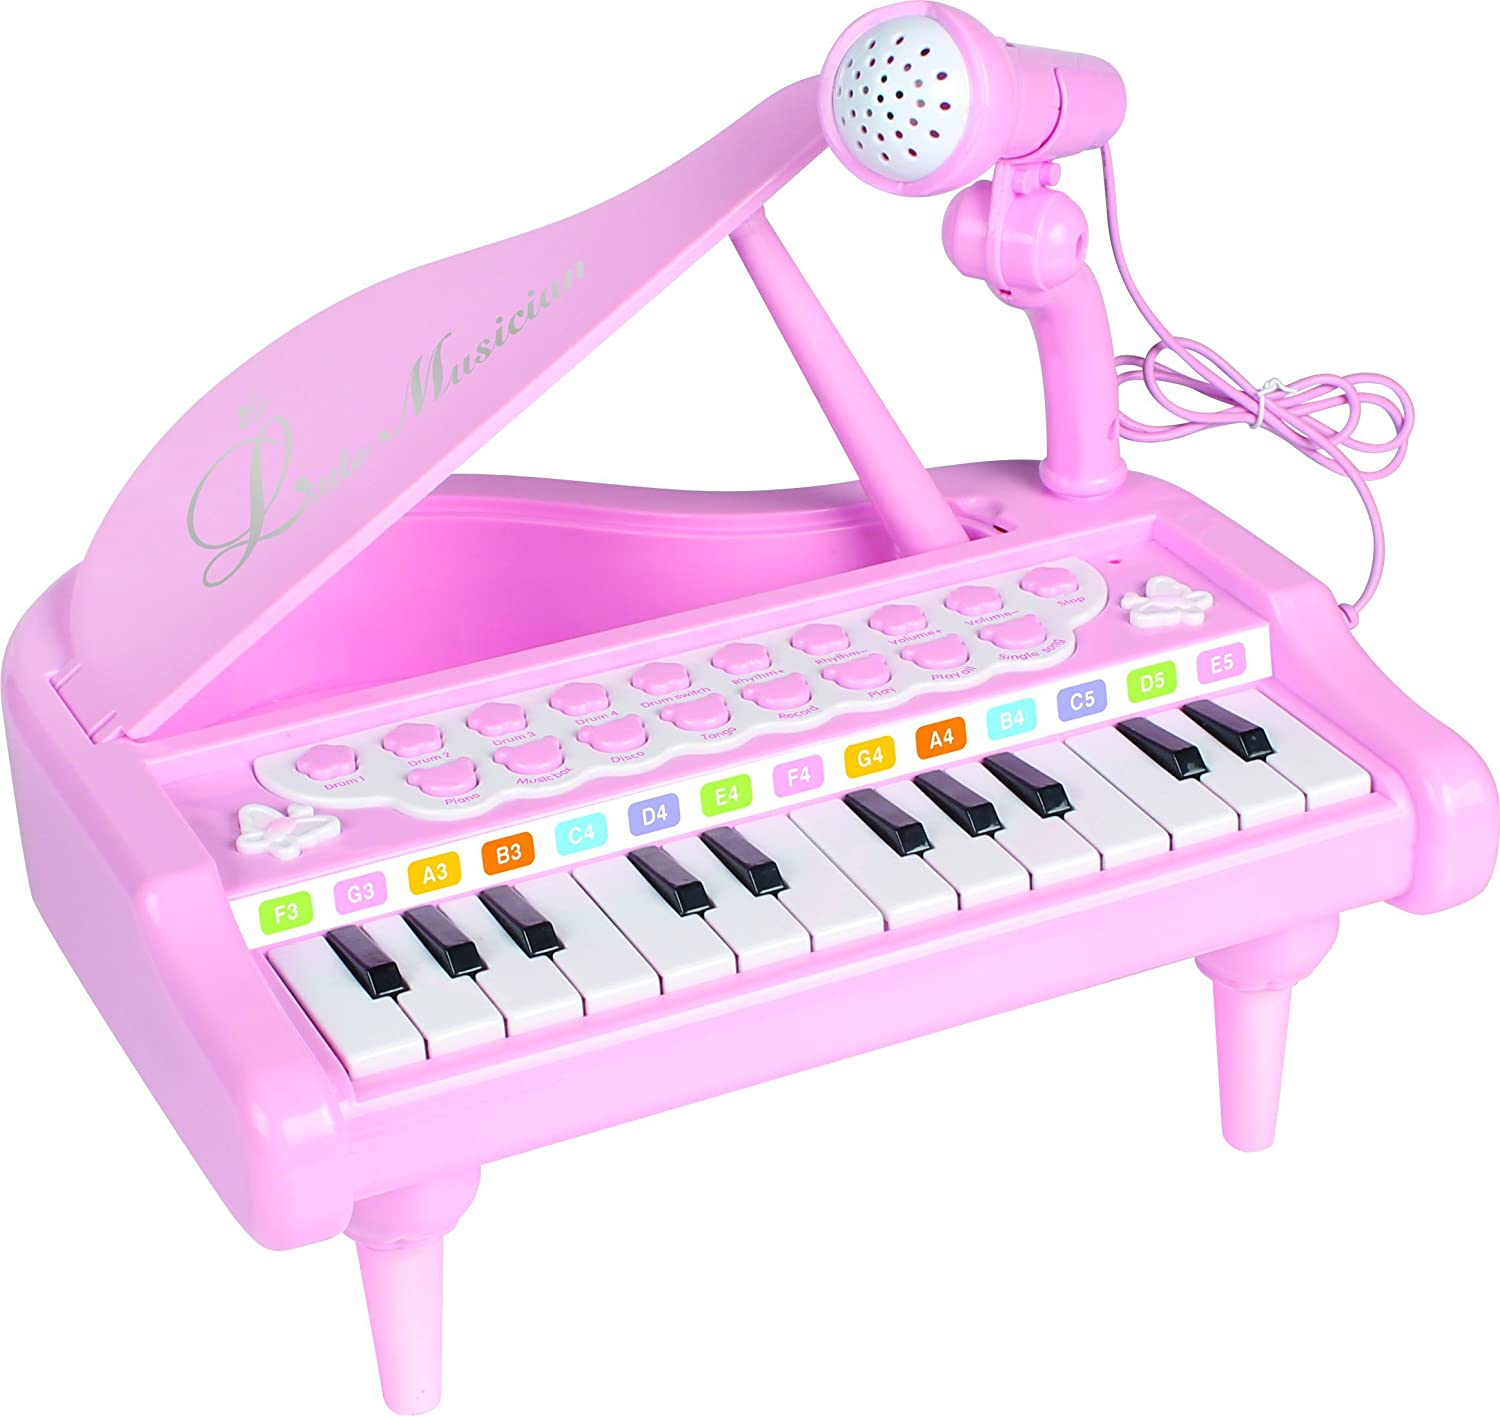 Lightahead 1505B Mini Musical Grand Piano Keyboard for Kids 24 Keys Multi functional Piano with Stand/Legs Microphone (Pink) Lightahead®